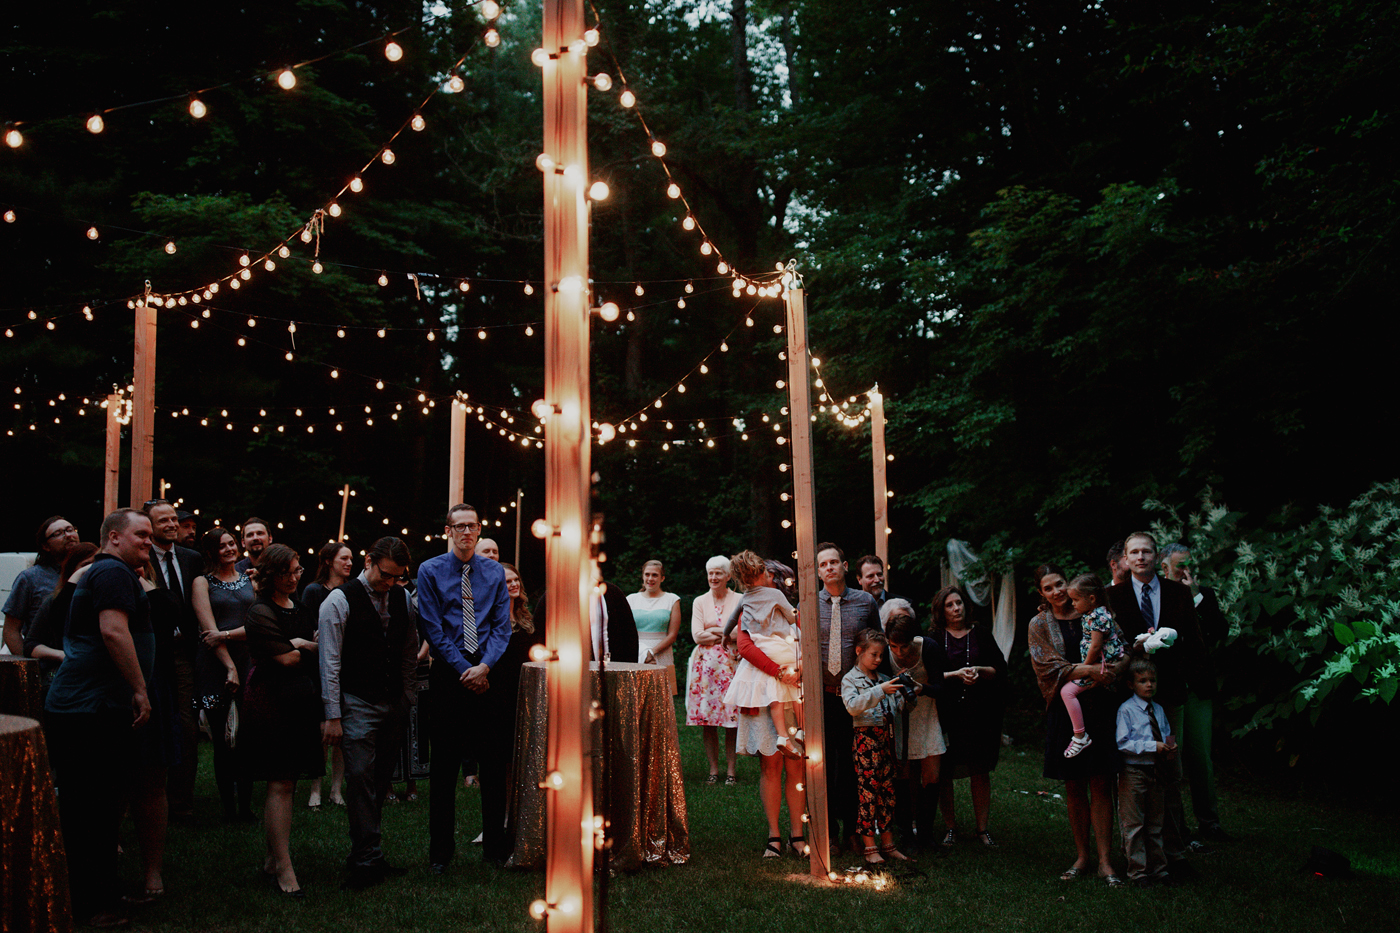 amandavanvels_backyardwedding_0791.jpg